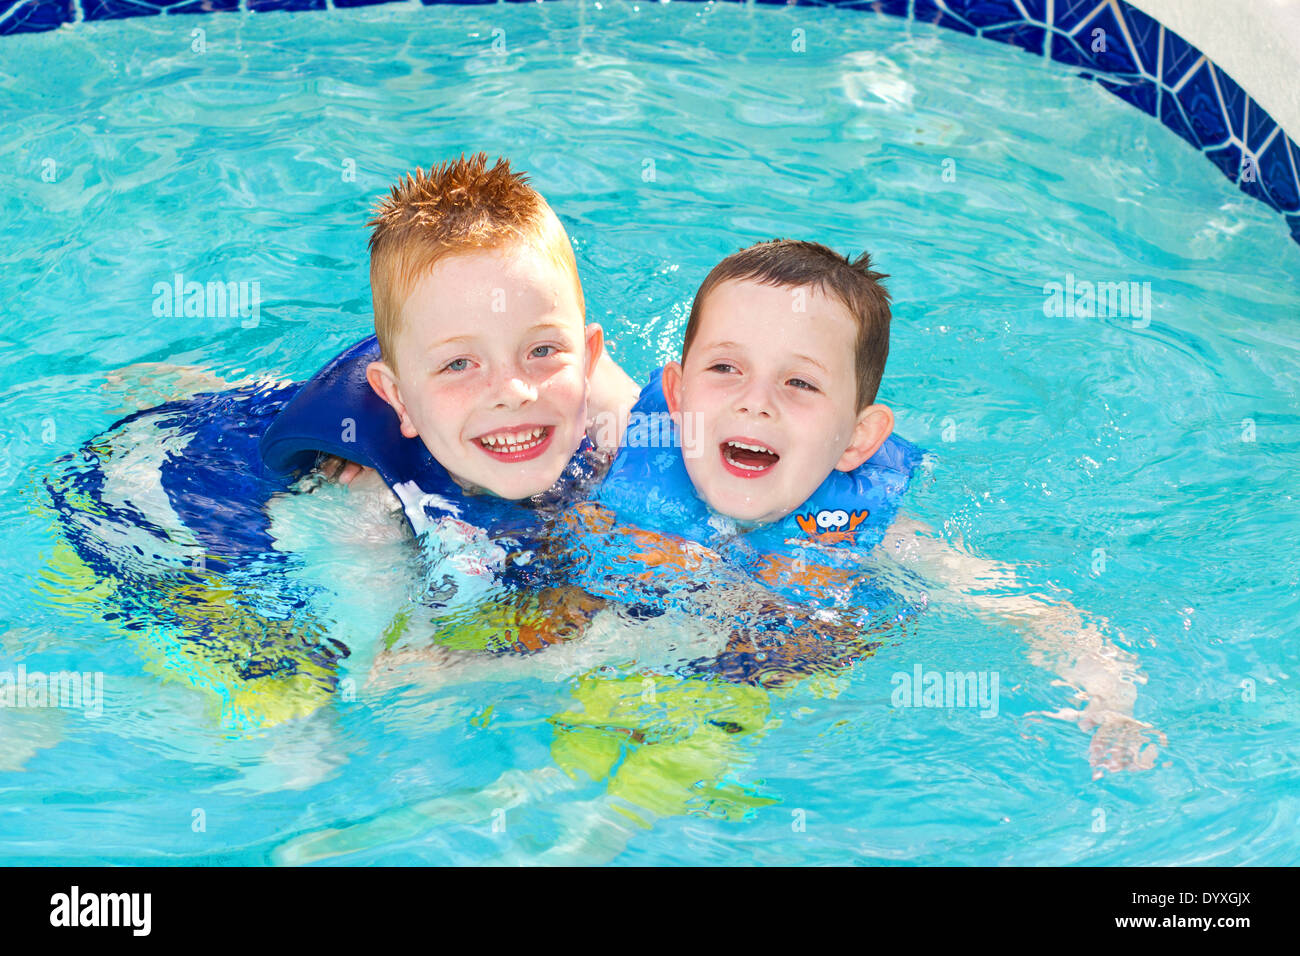 Two Young Boys playing in the swimming pool wearing UV protection ...